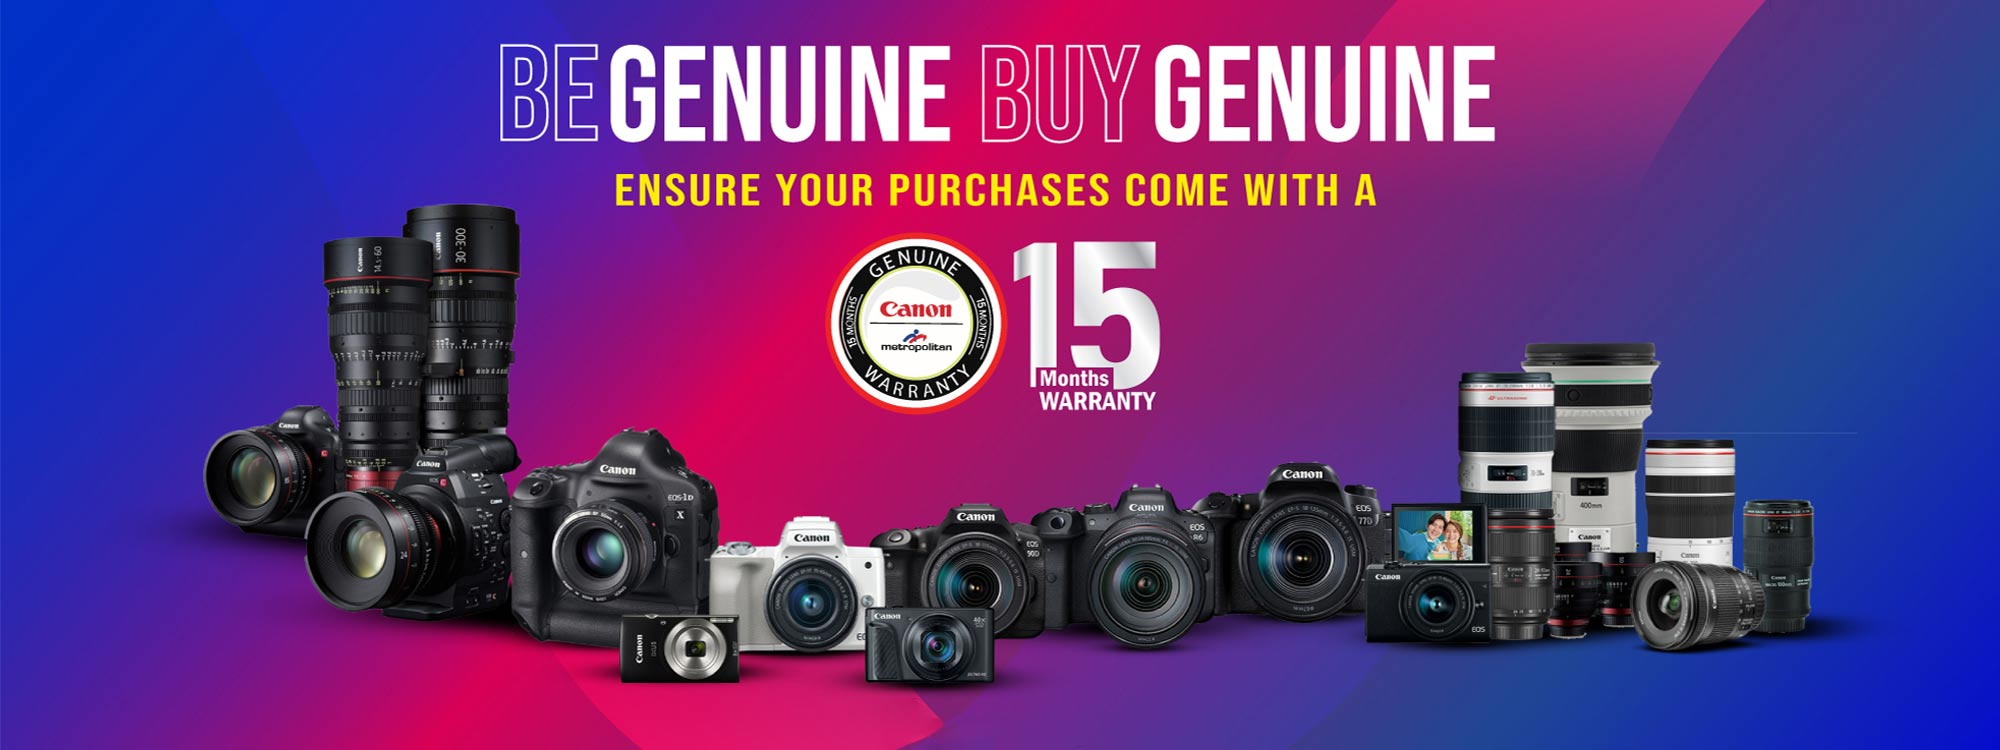 Be Genuine Buy Genuine with Canon Metropolitan 15 Months Agent Warranty